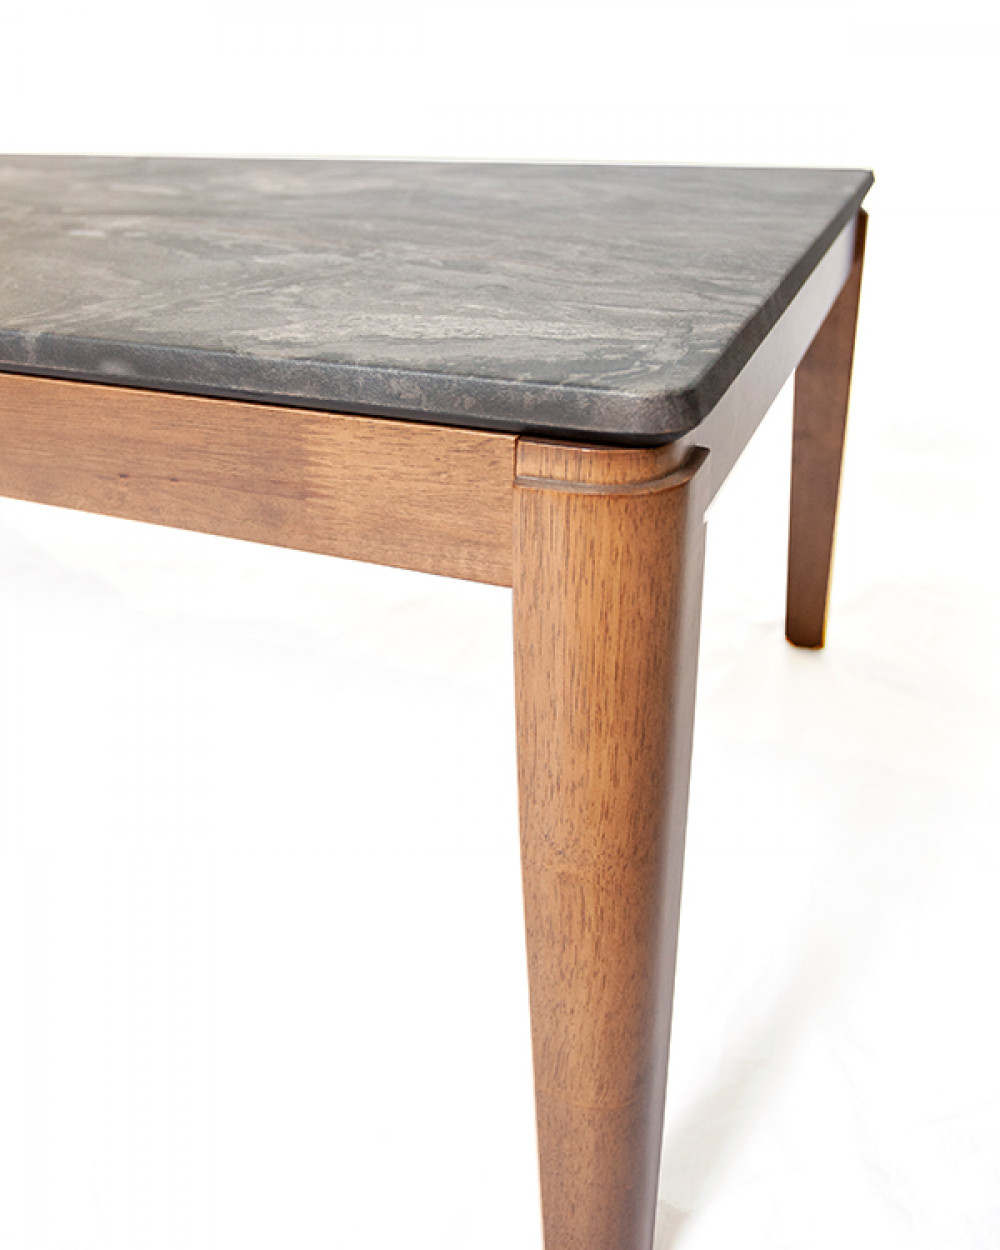 Brilliance Top | Wilberg Coffee Table